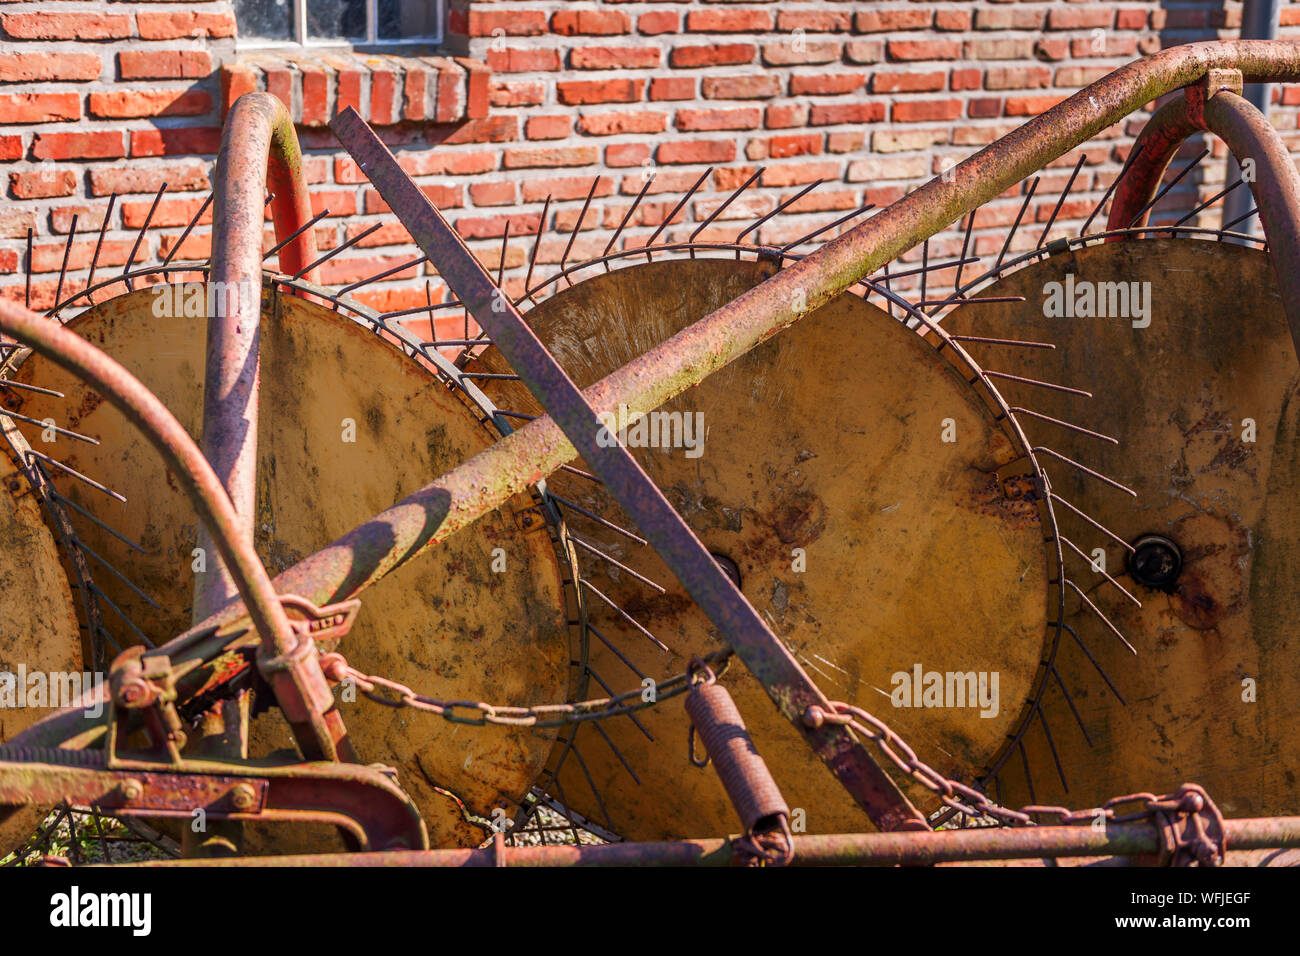 Closeup of an old, rusty tedder on a bricks wall. Stock Photo